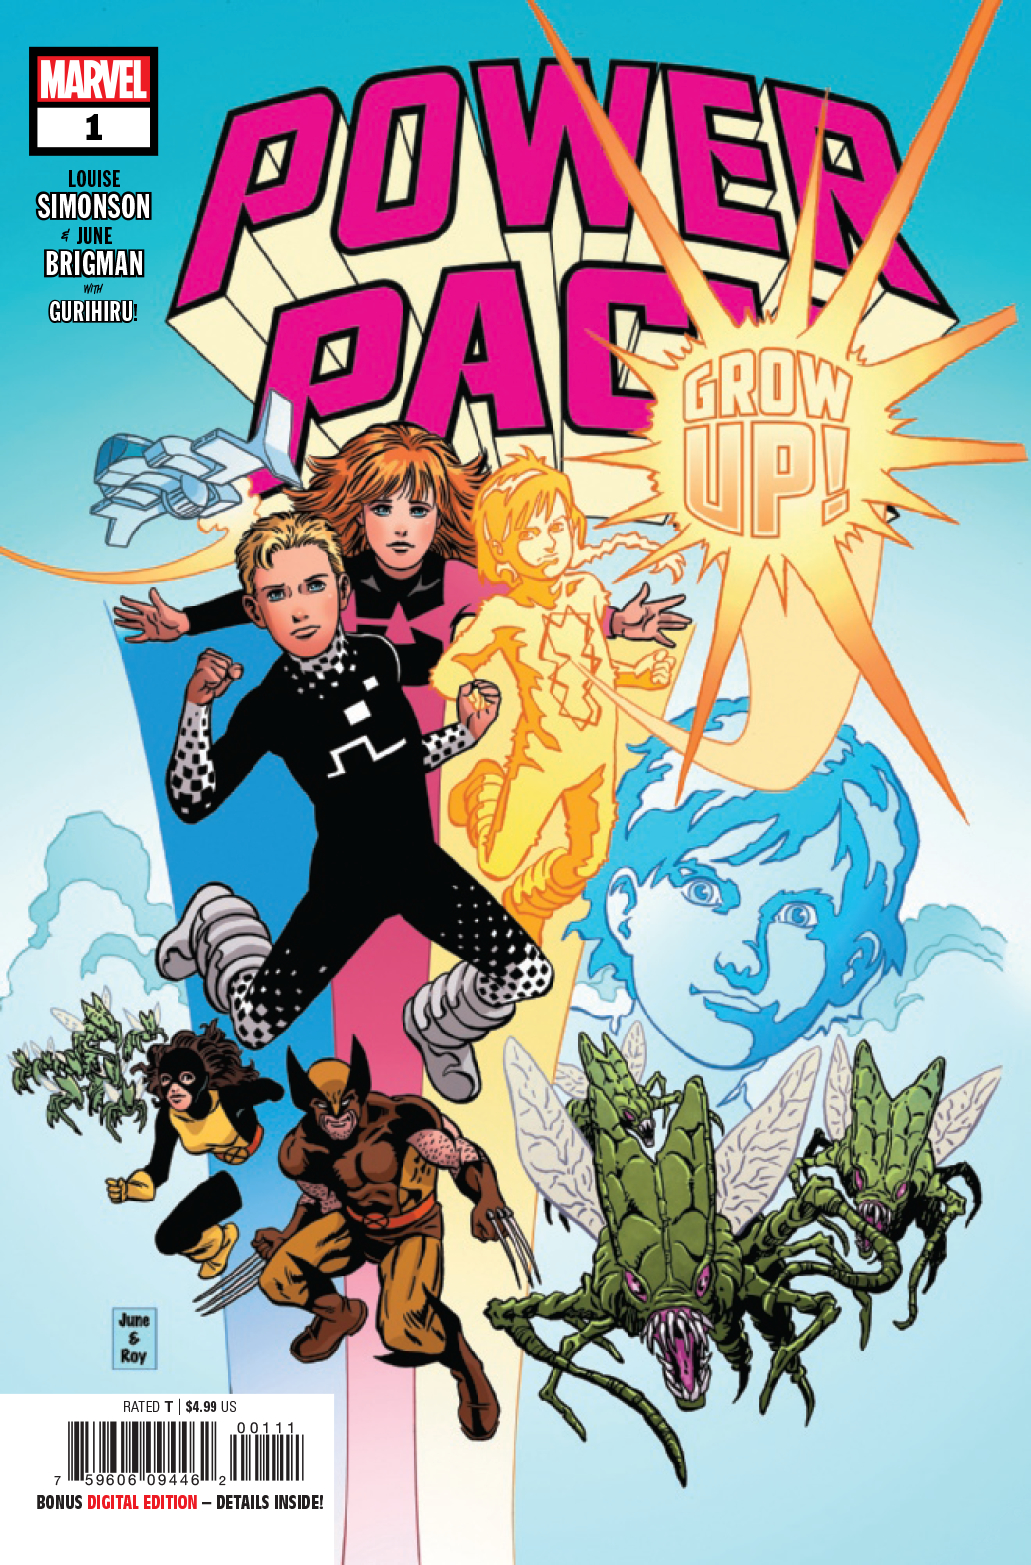 POWER PACK GROW UP #1